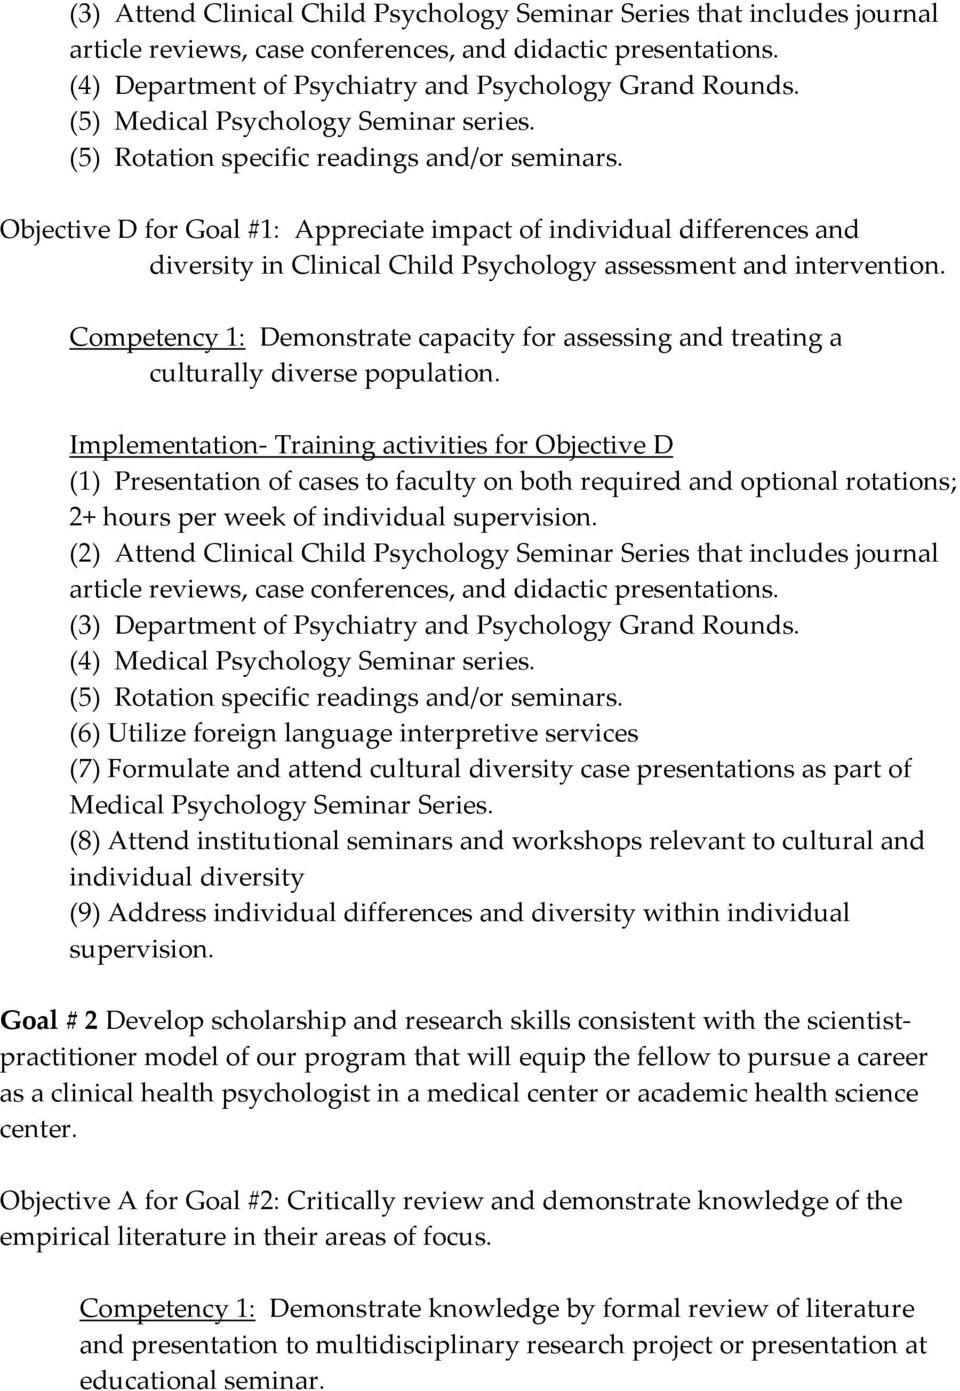 Objective D for Goal #1: Appreciate impact of individual differences and diversity in Clinical Child Psychology assessment and intervention.